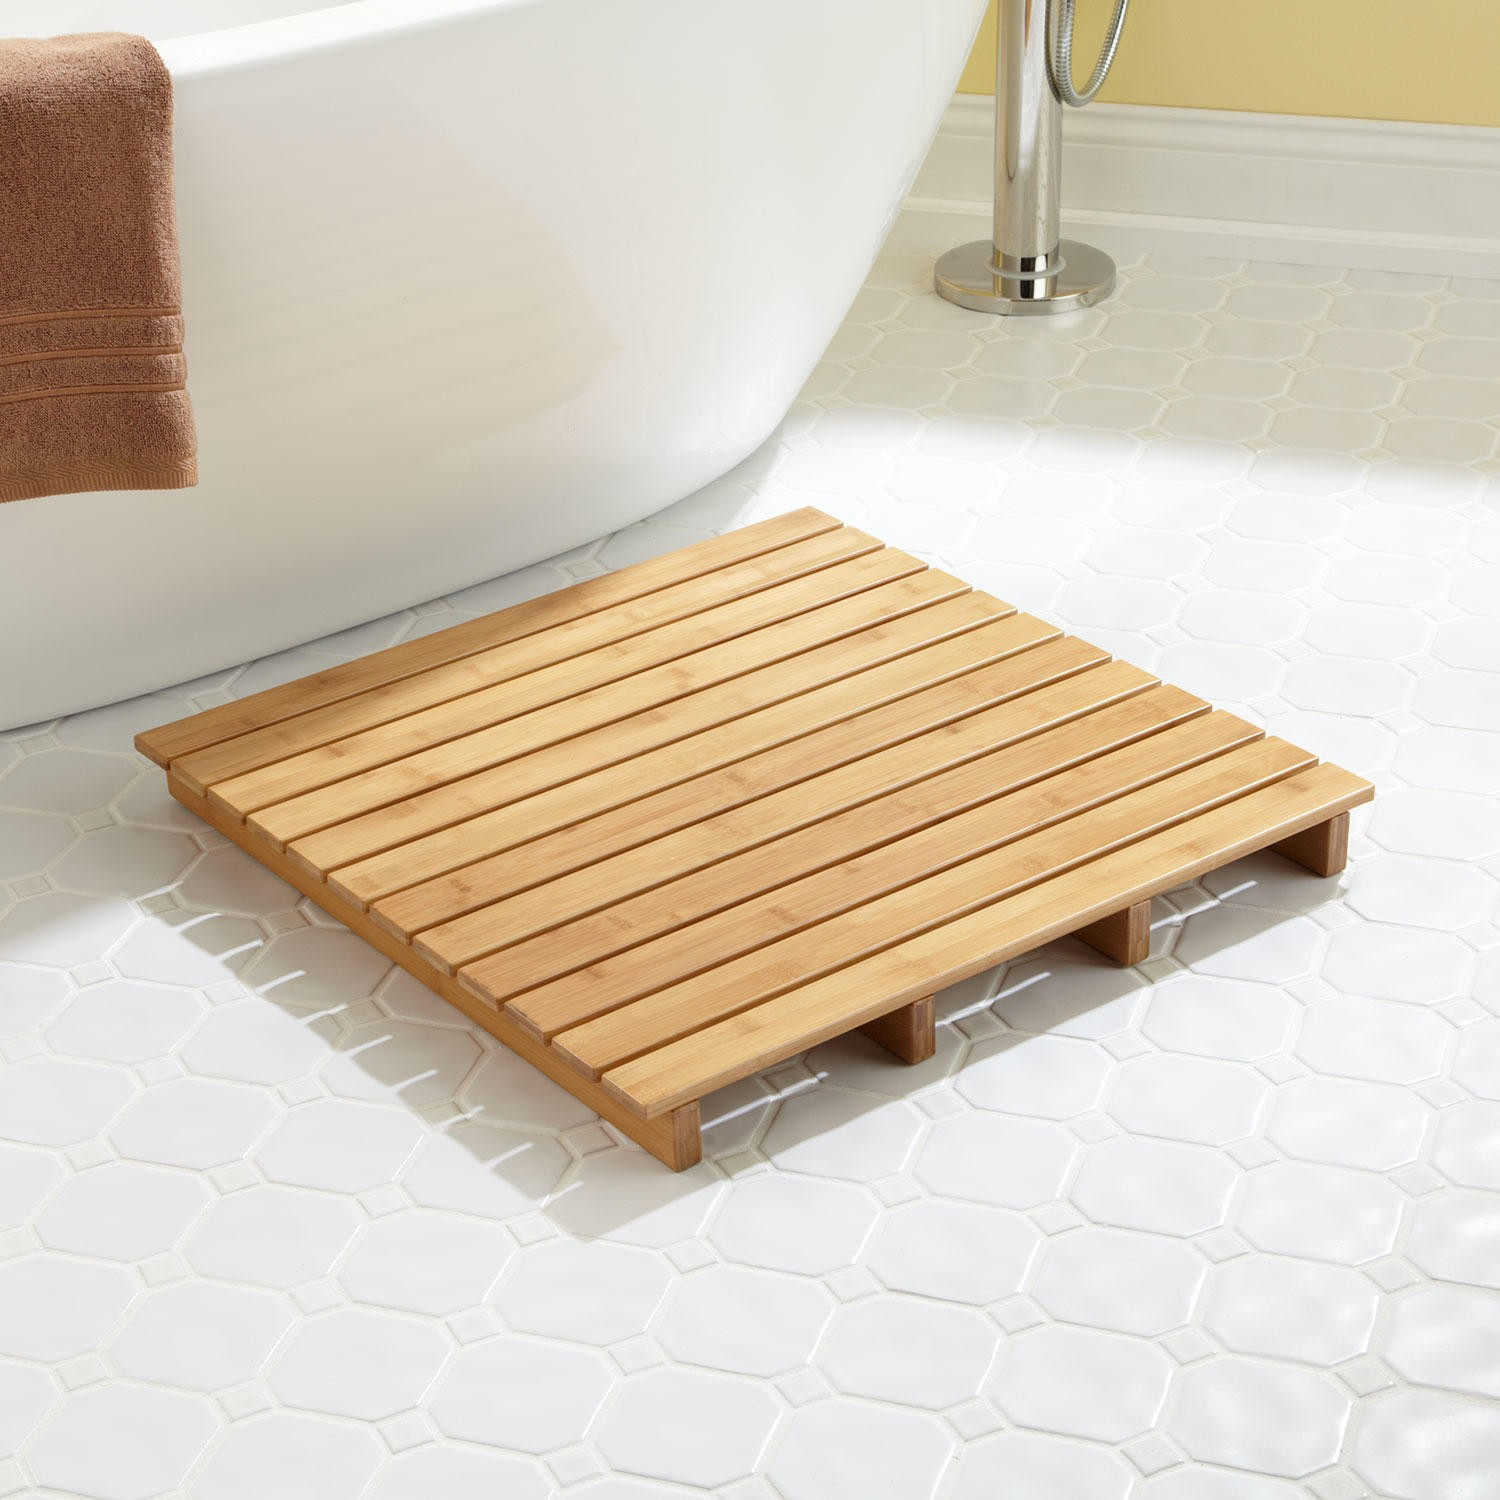 Bath Mat Ideas To Make Your Bathroom Feel More Like A Spa - Rugs and mats for bathroom decorating ideas